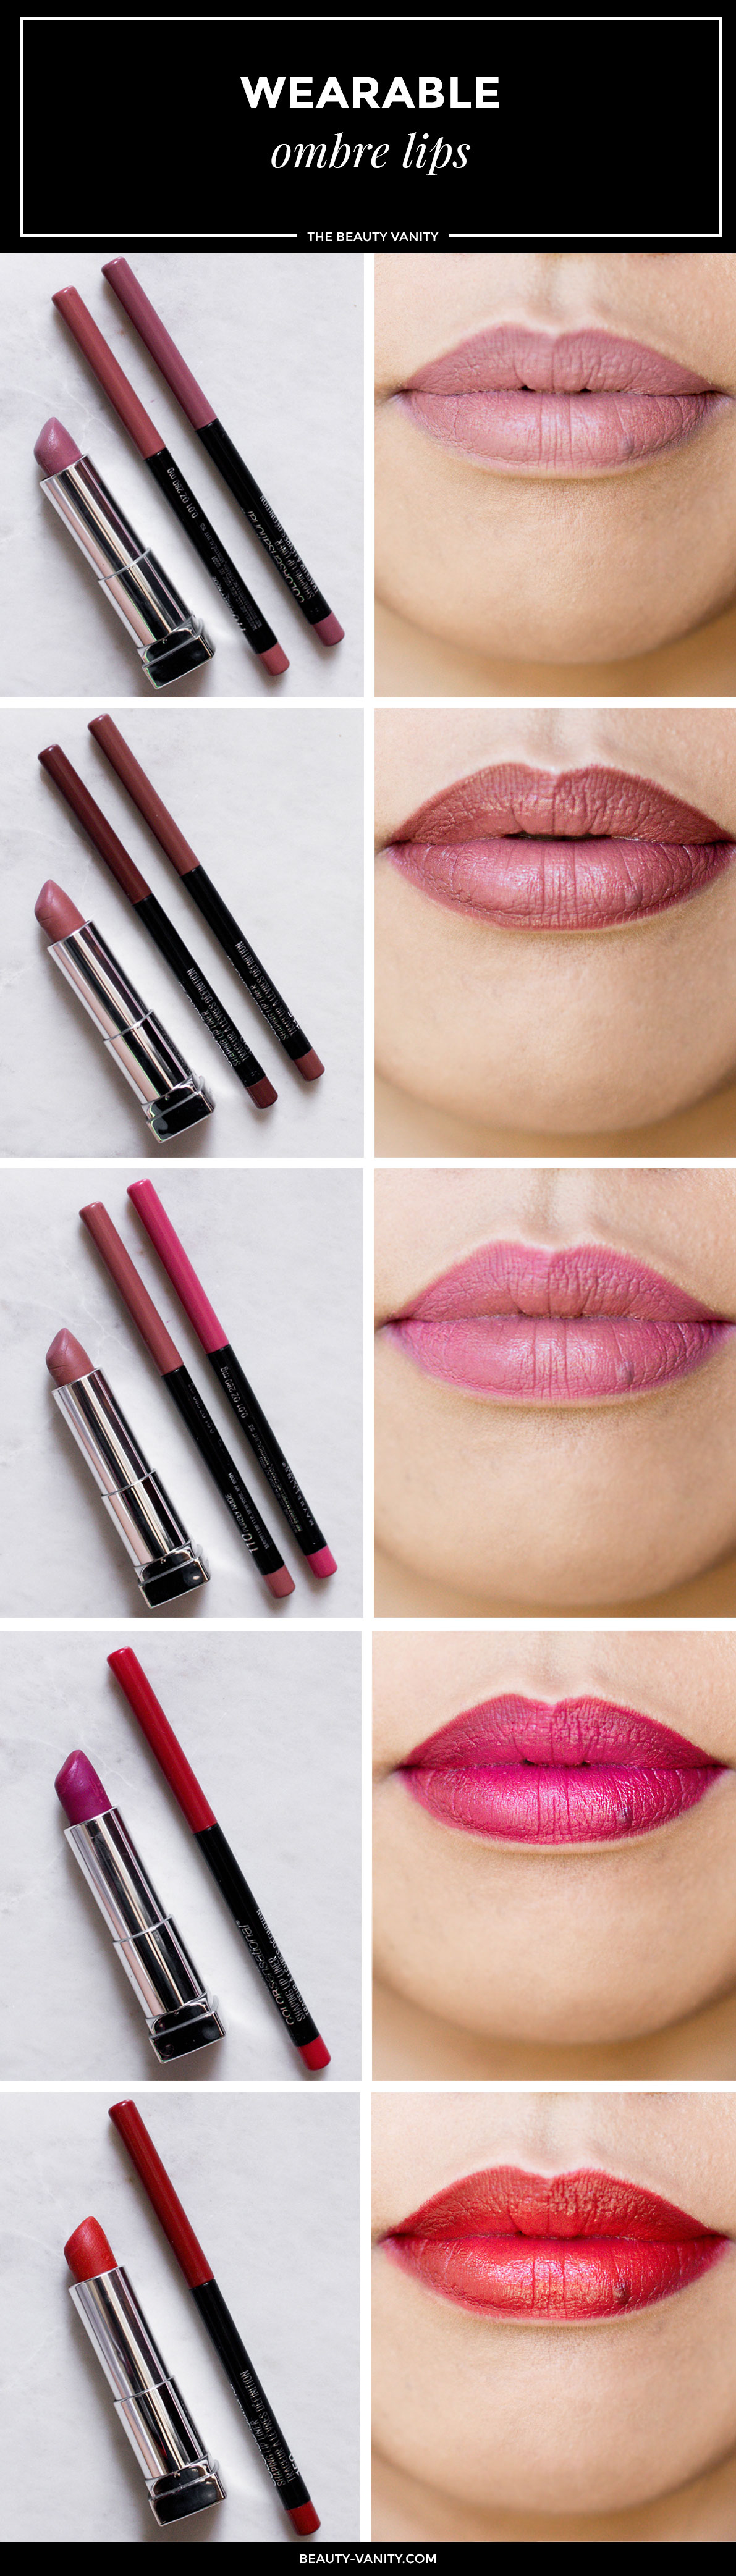 Wearable Ombre Lips To Wear To a Wedding Party | The Beauty Vanity